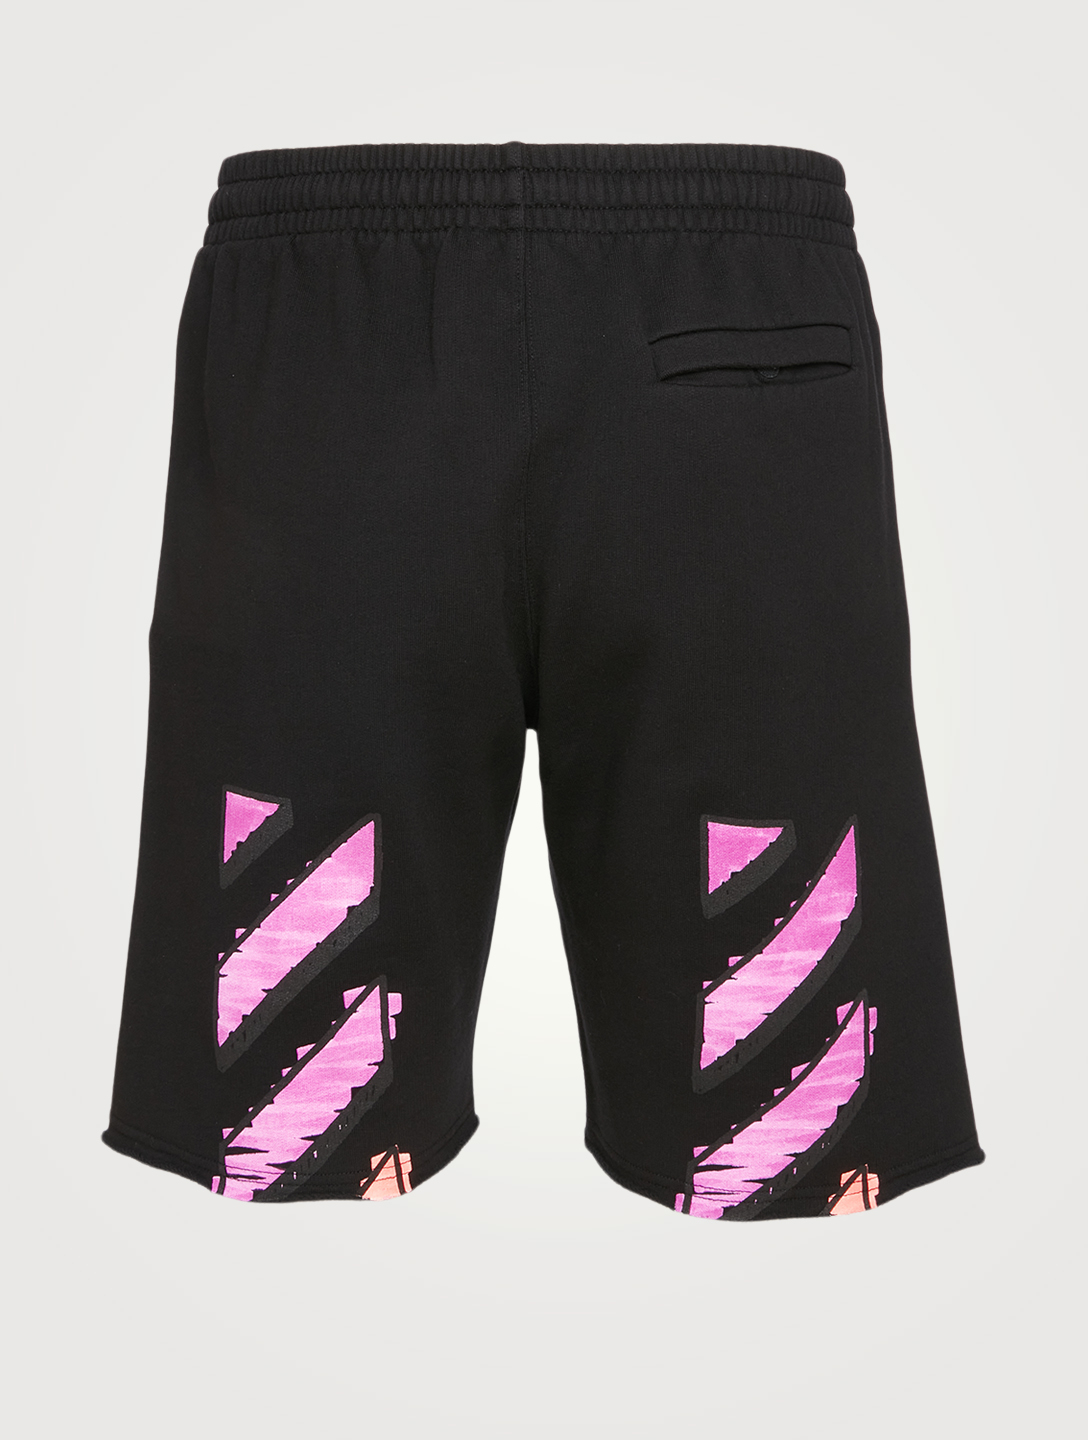 OFF-WHITE Marker Cotton Sweat Shorts Men's Black